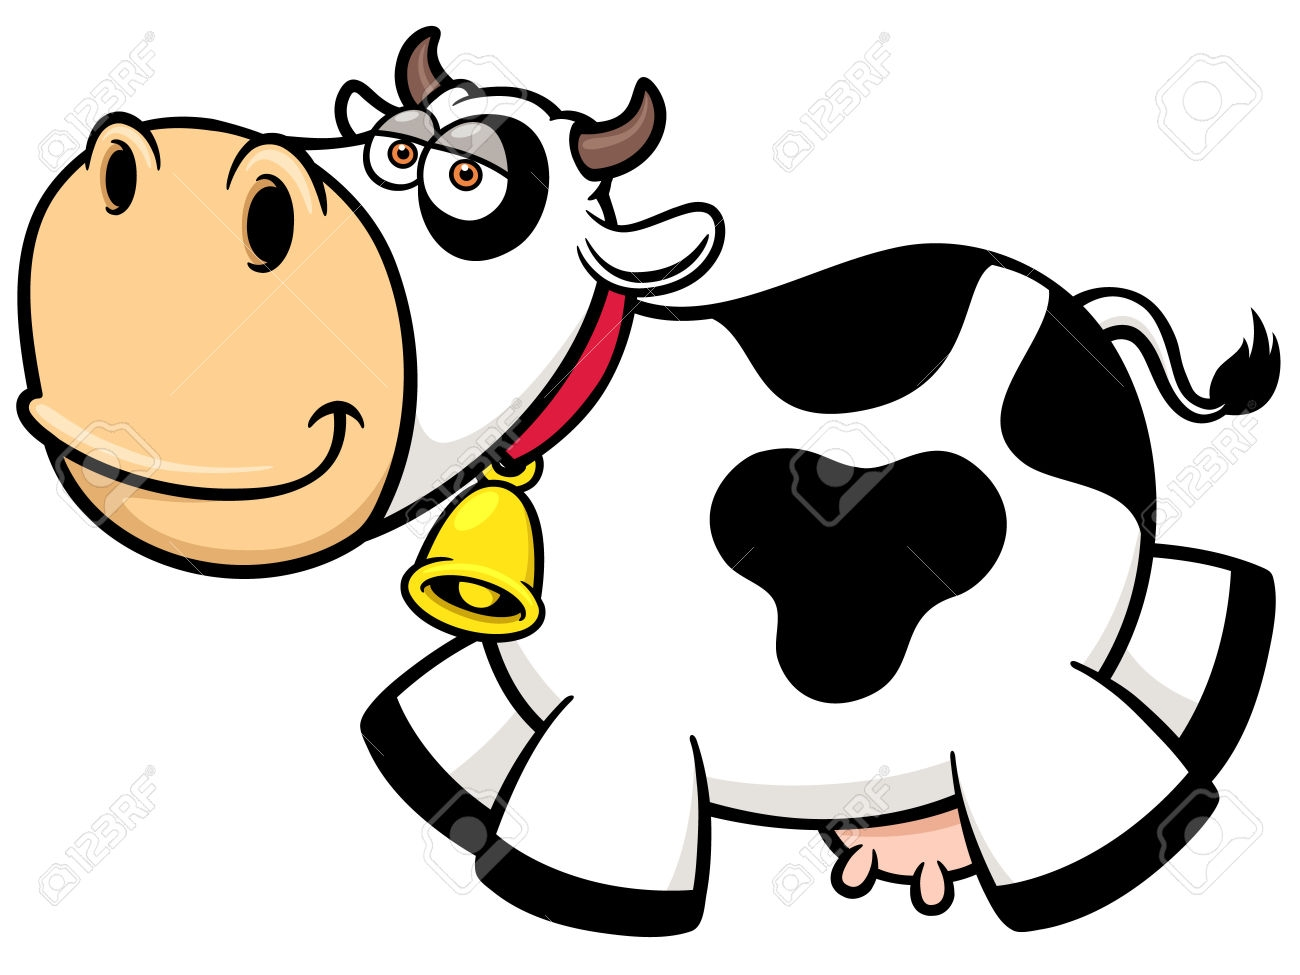 1300x975 Free Vector Graphic Cattle Cow Cowbell Silhouette Jalt9is Image